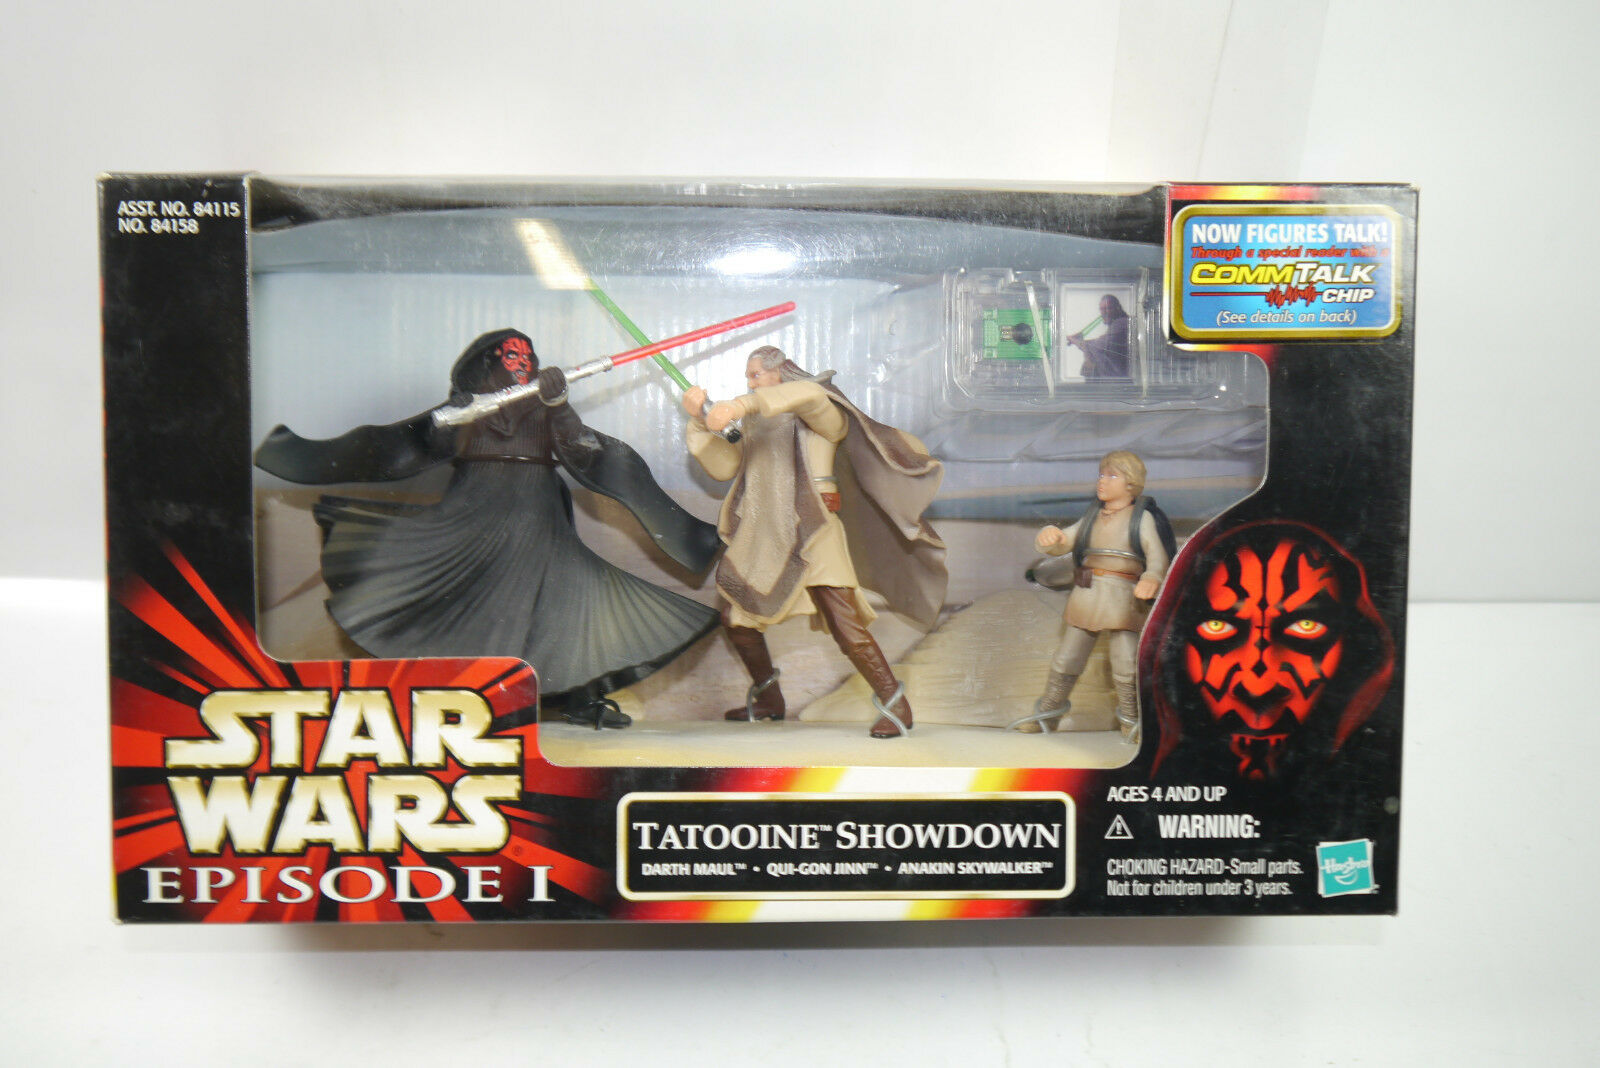 Star Wars Episodio i Tatooine Showdown Darth Maul Qui-Gon Jinn Hasbro